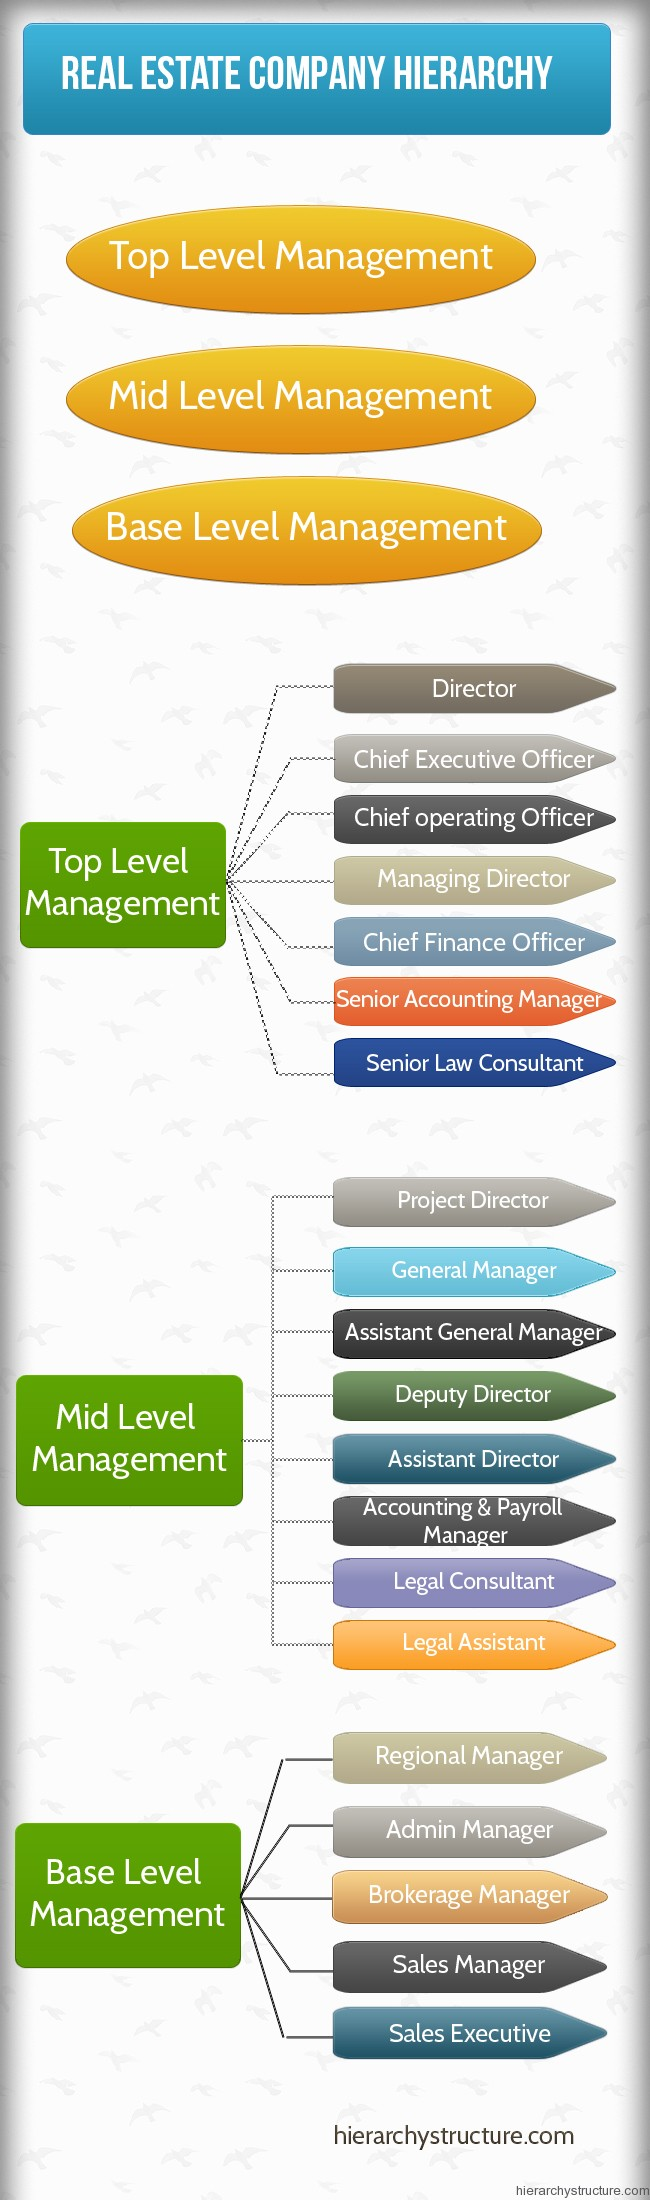 Real Estate Company Hierarchy